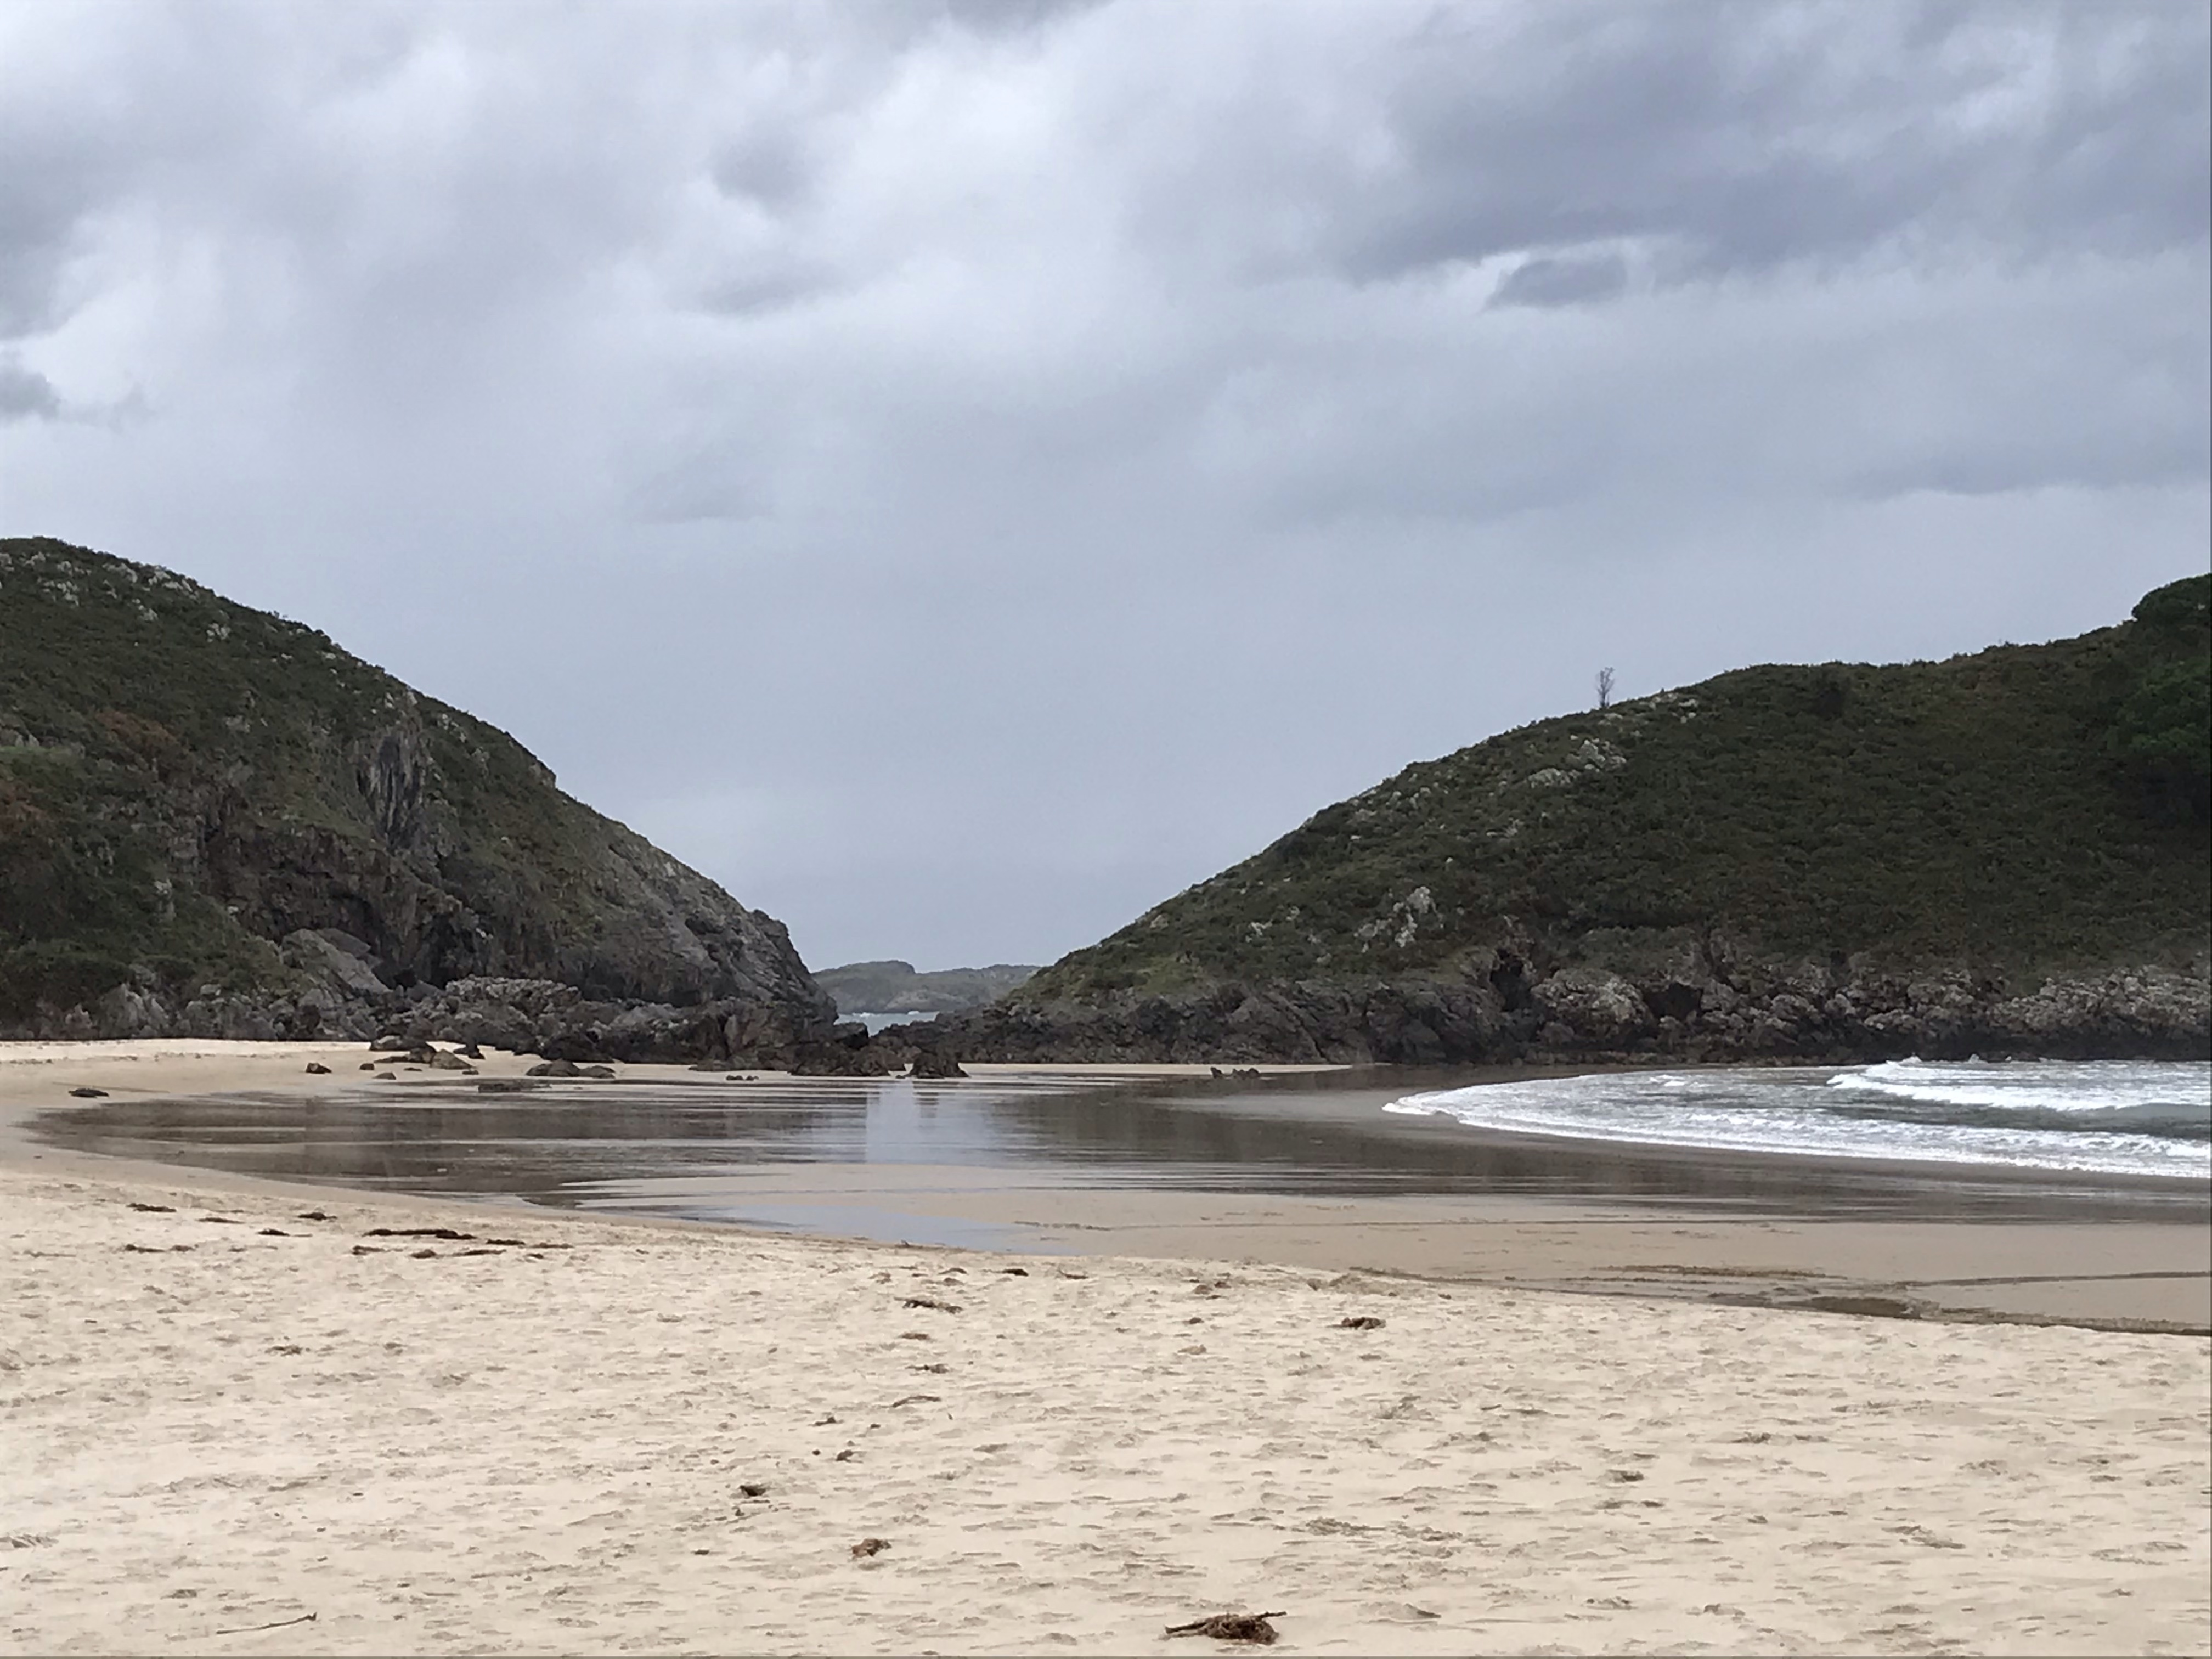 Playa de Barru, Asturias, nov 2019